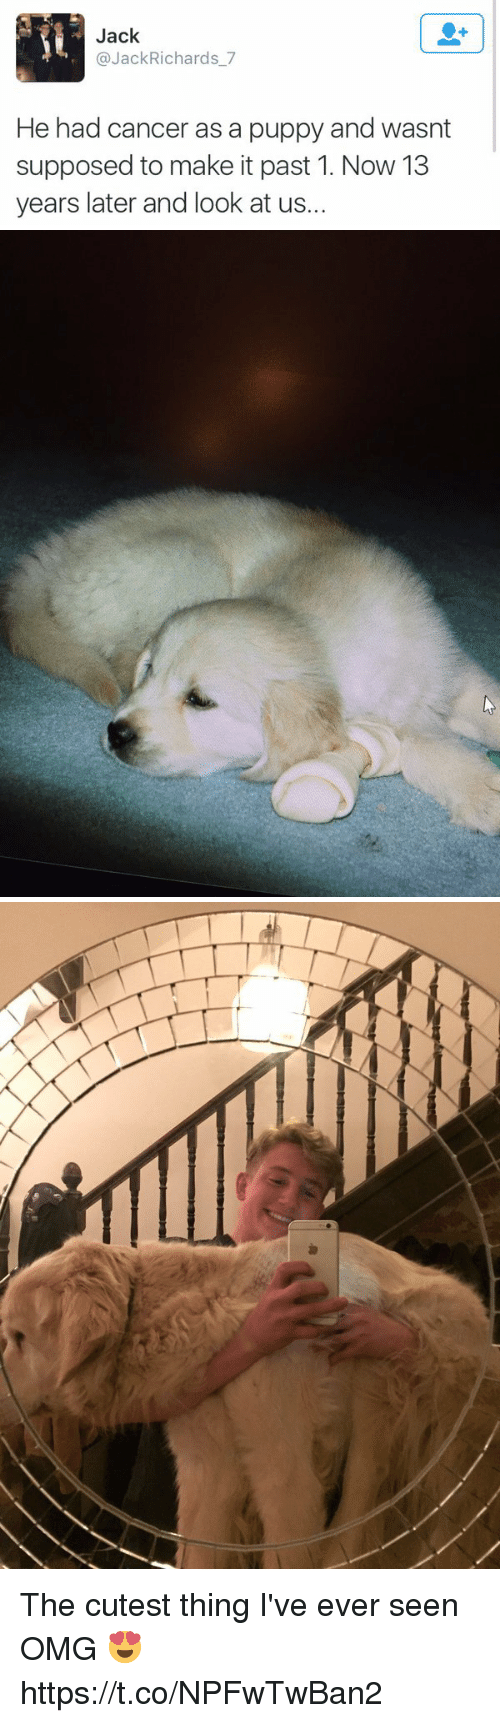 Omg, Cancer, and Puppy: Jack  @JackRichards_7  He had cancer as a puppy and wasnt  supposed to make it past 1. Now 13  years later and look at us. The cutest thing I've ever seen OMG 😍 https://t.co/NPFwTwBan2